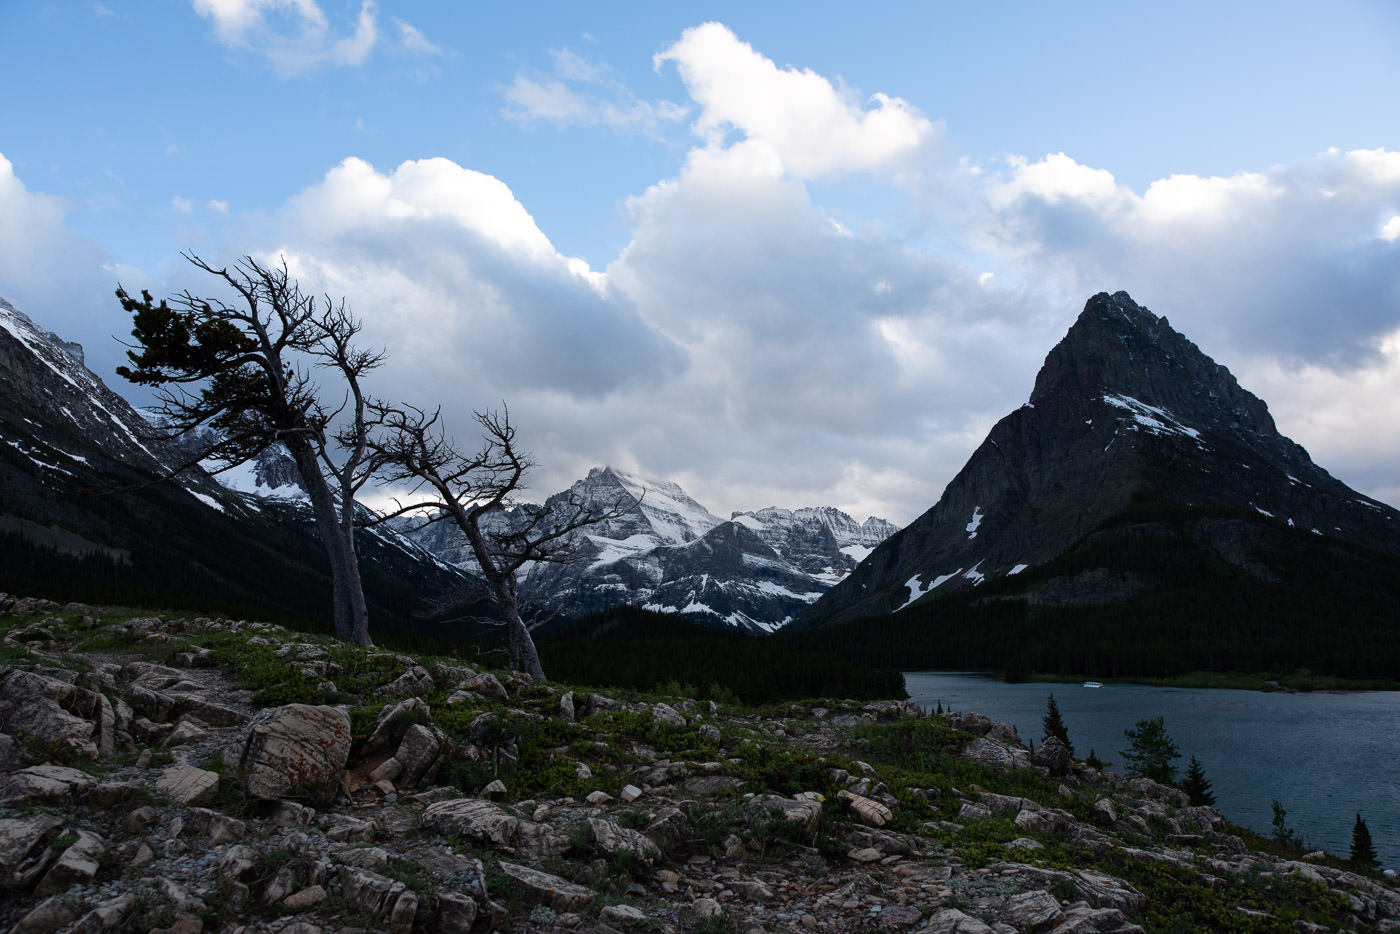 Glacier National Park, Montana - As wild as it is beautiful. Discover my wedding package options for the crown of the continent in Glacier National Park Montana.